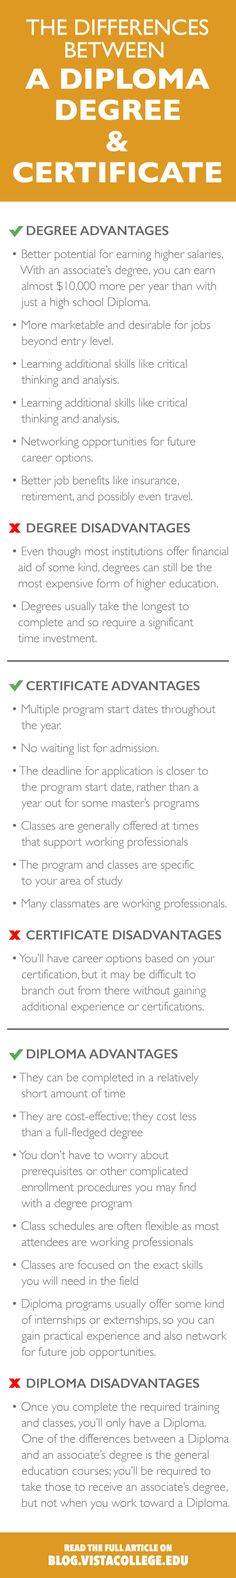 The Differences Between a Diploma, Degree, and Certificate